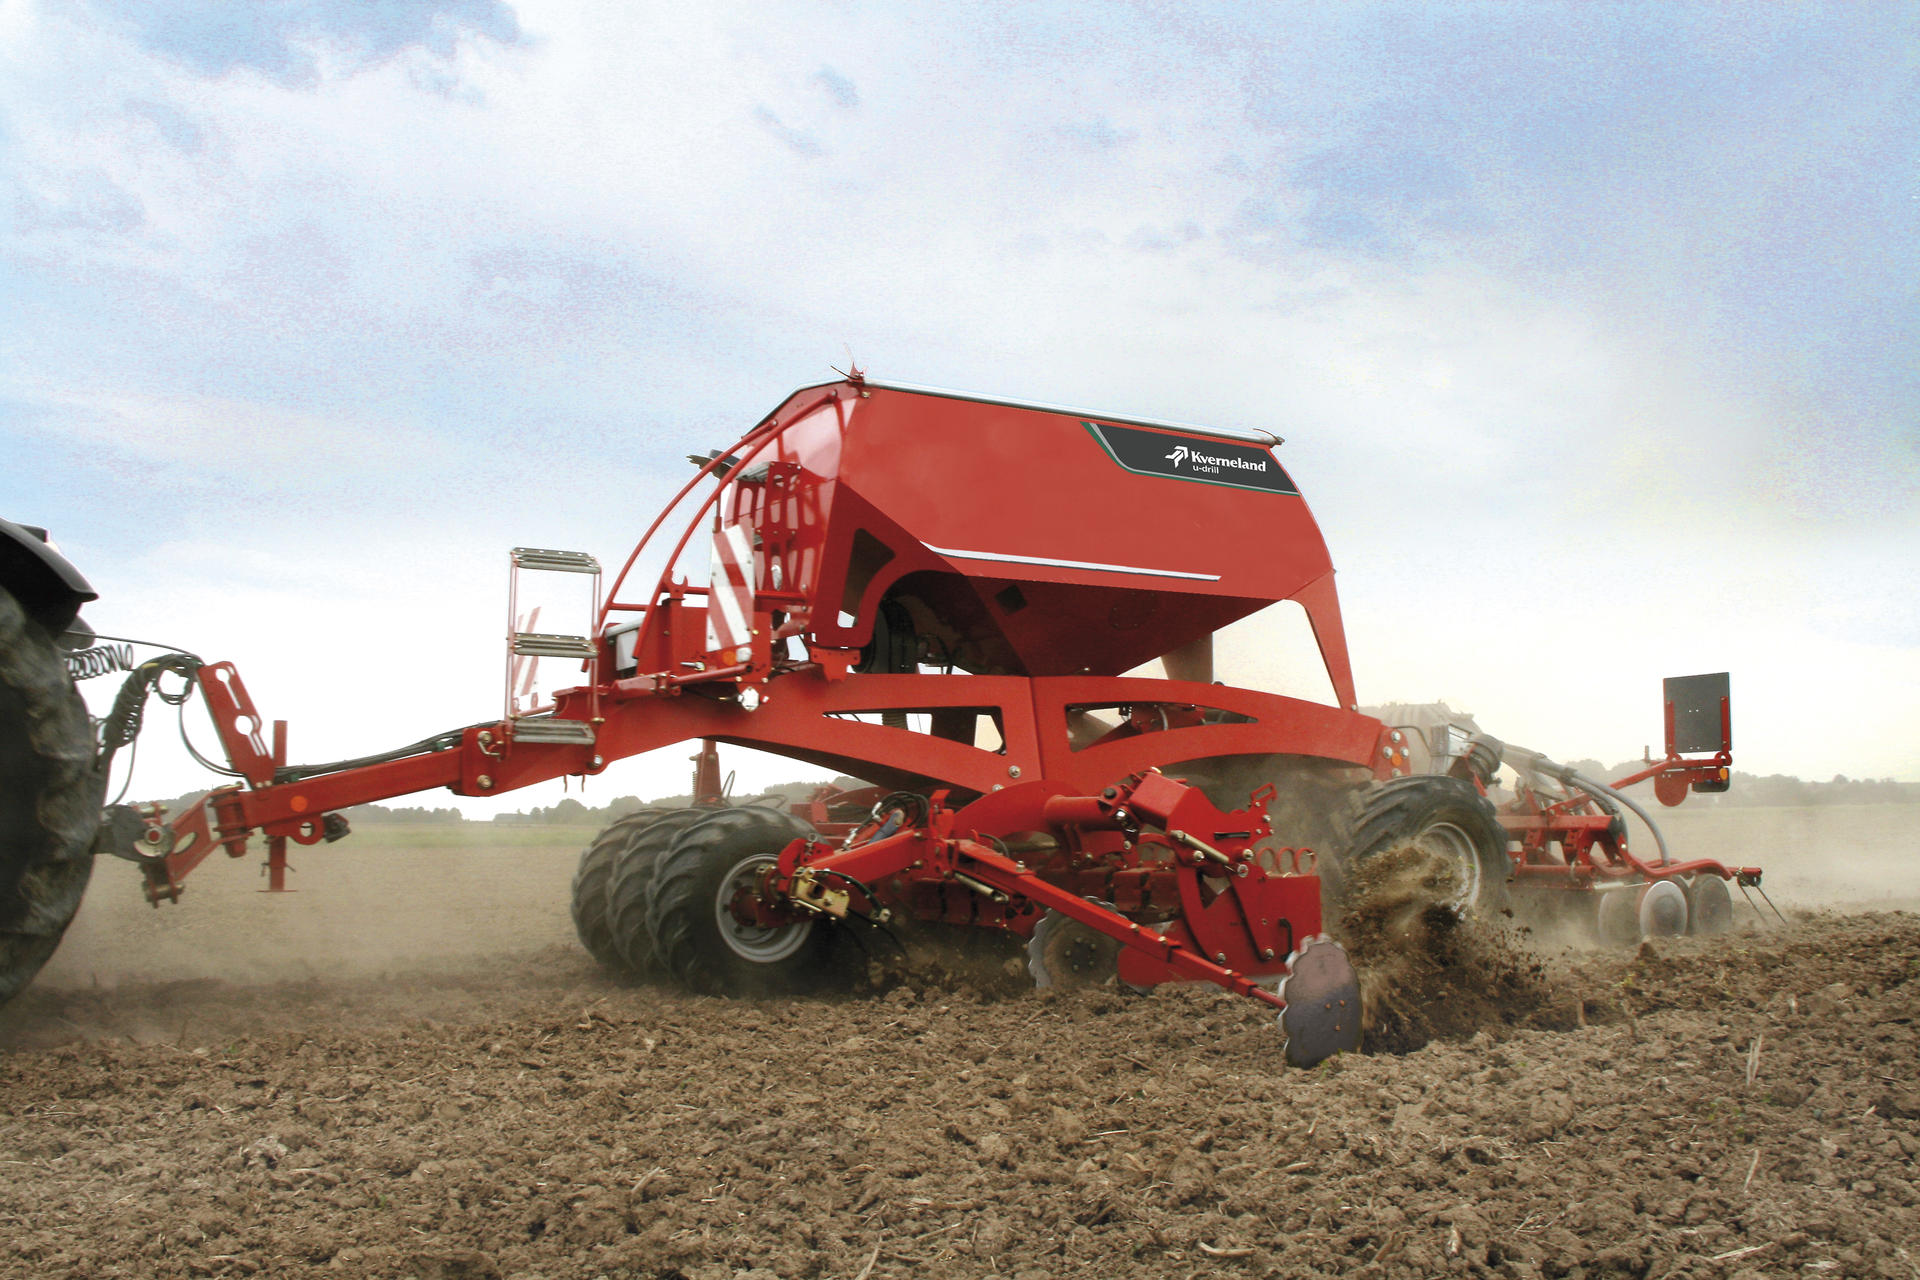 The u-drill - the universal seed drill combination